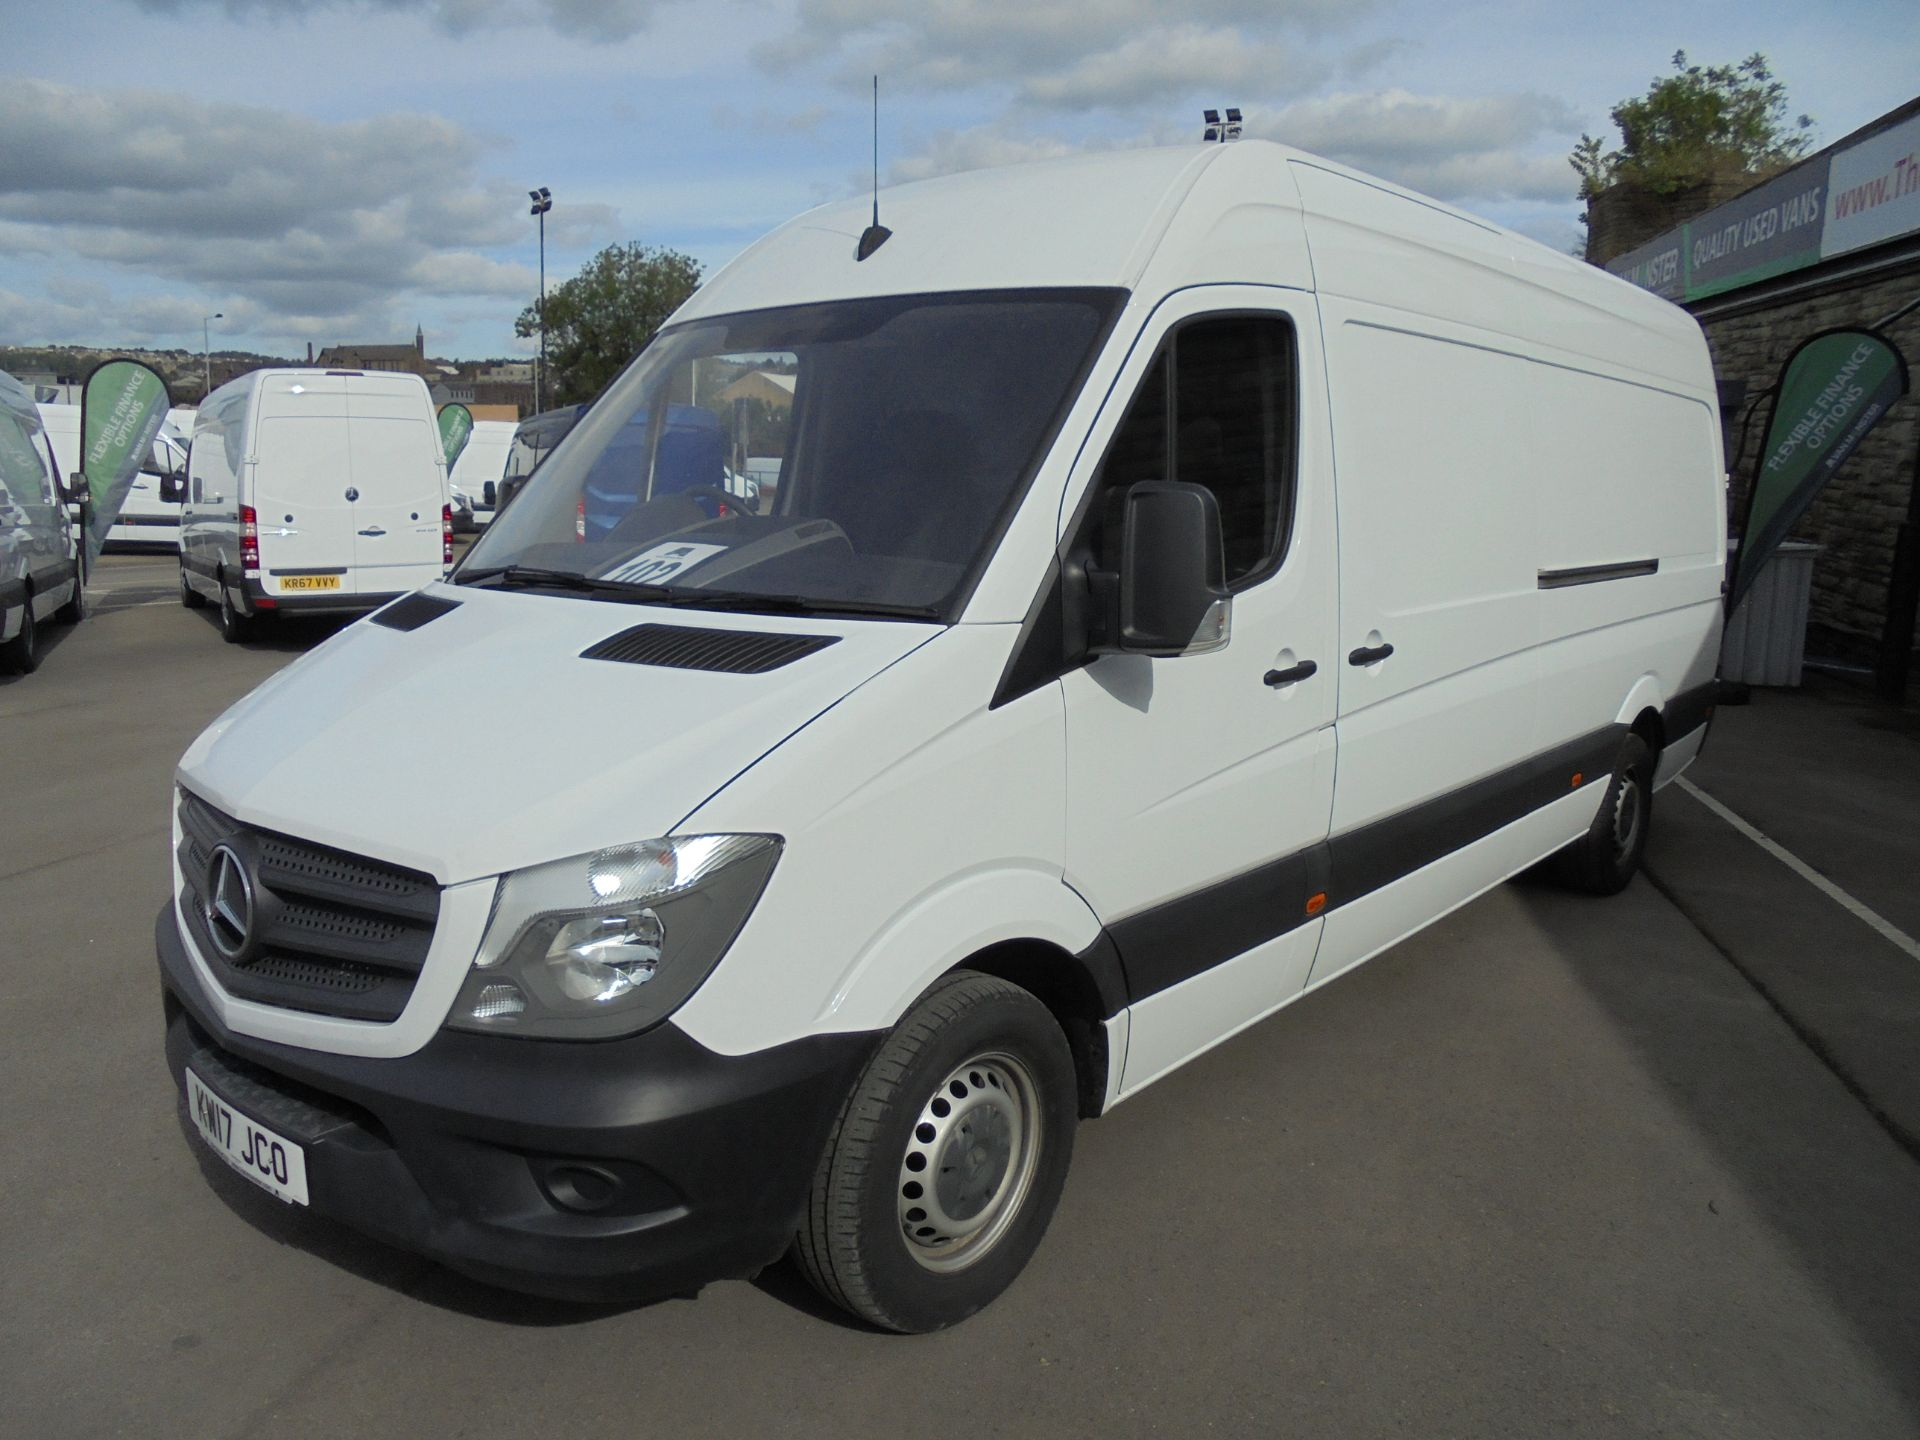 2017 Mercedes-Benz Sprinter 3.5T High Roof Van LWB (KW17JCO) Thumbnail 3